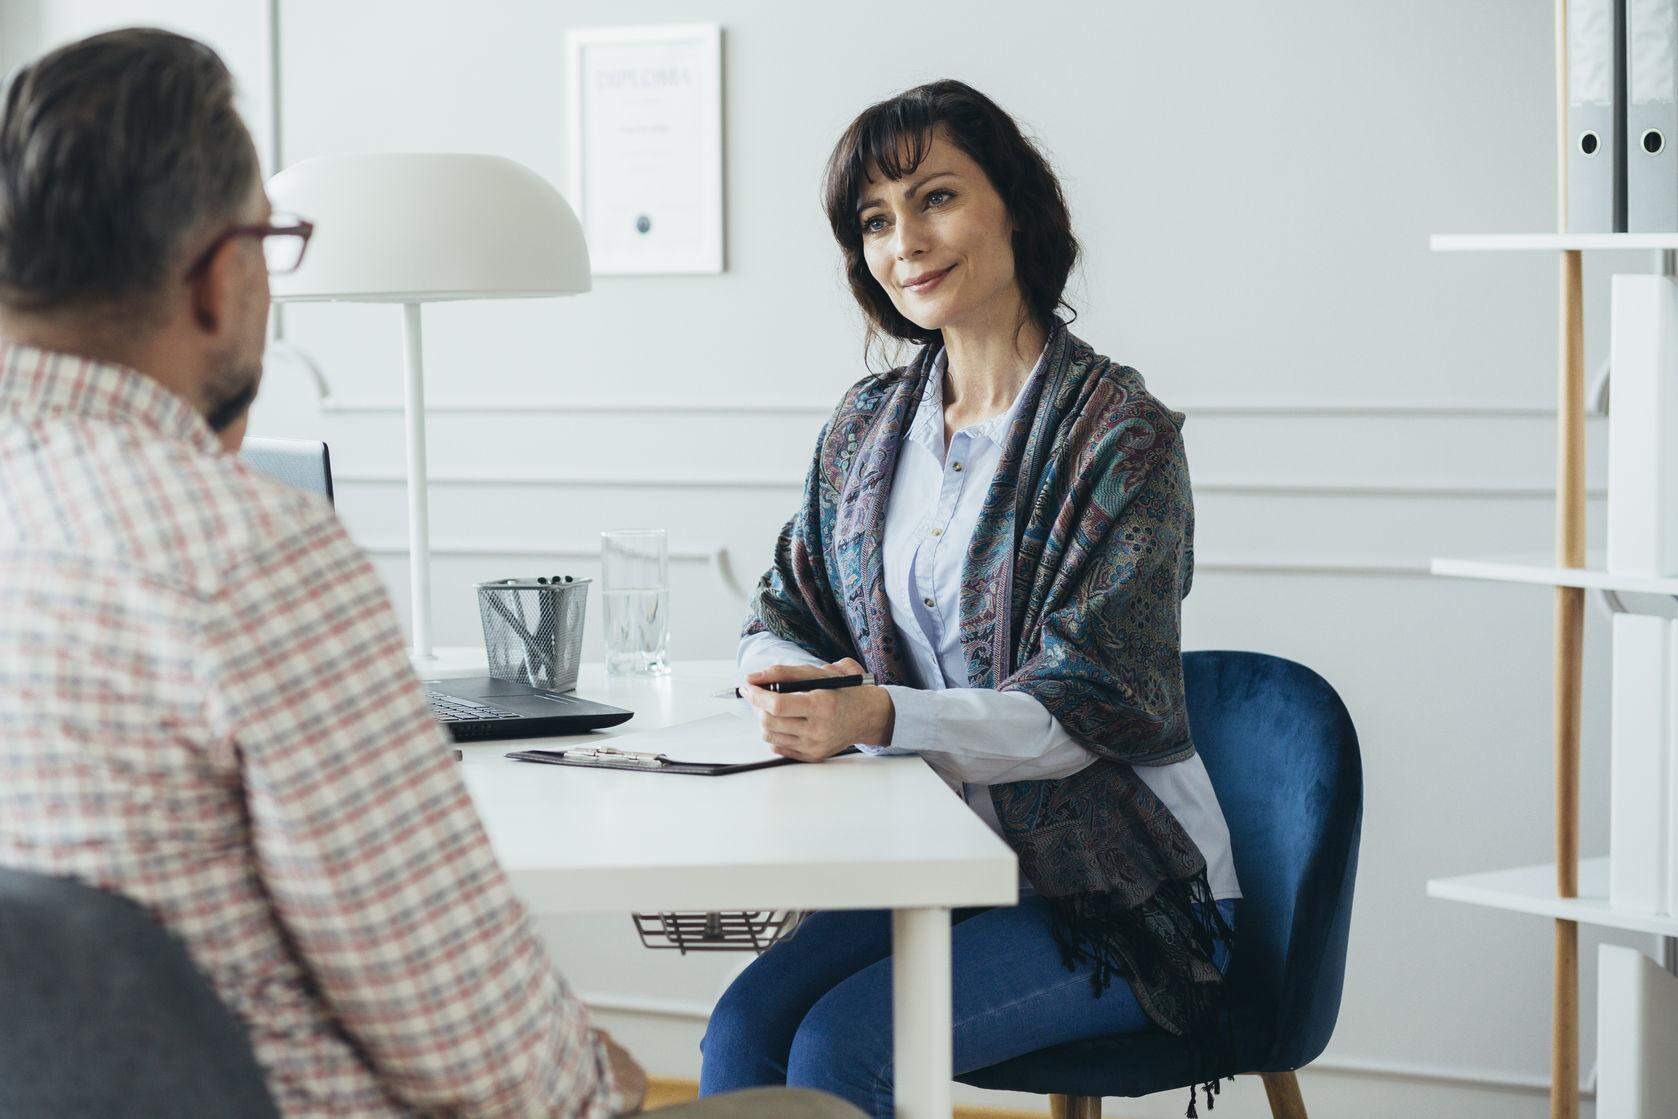 Adult woman wants to tell how to gain life balance